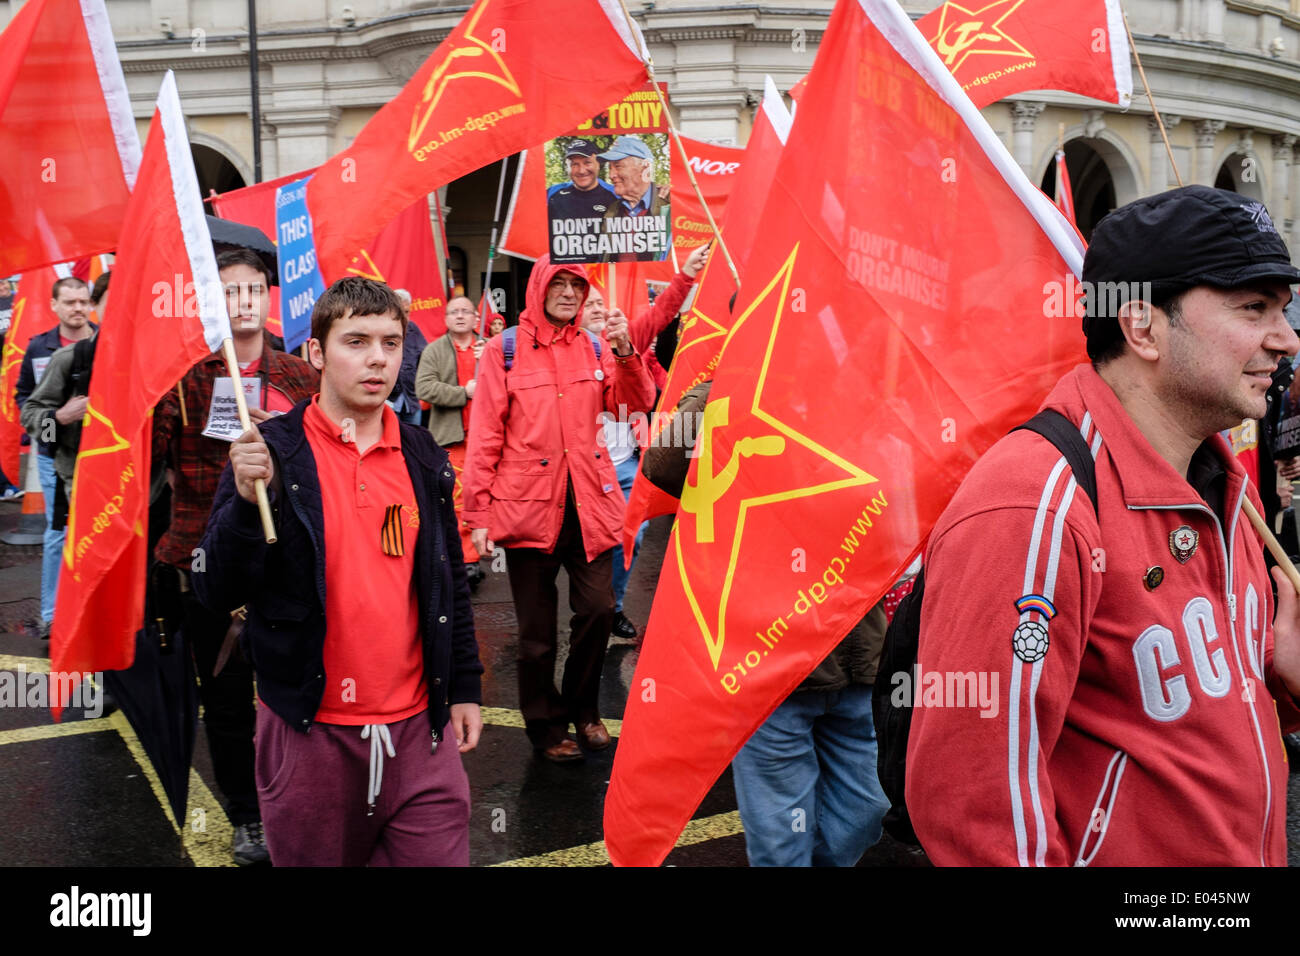 Members of the Communist Party of Great Britain participate in the annual  May Day march and  rally in London - Stock Image